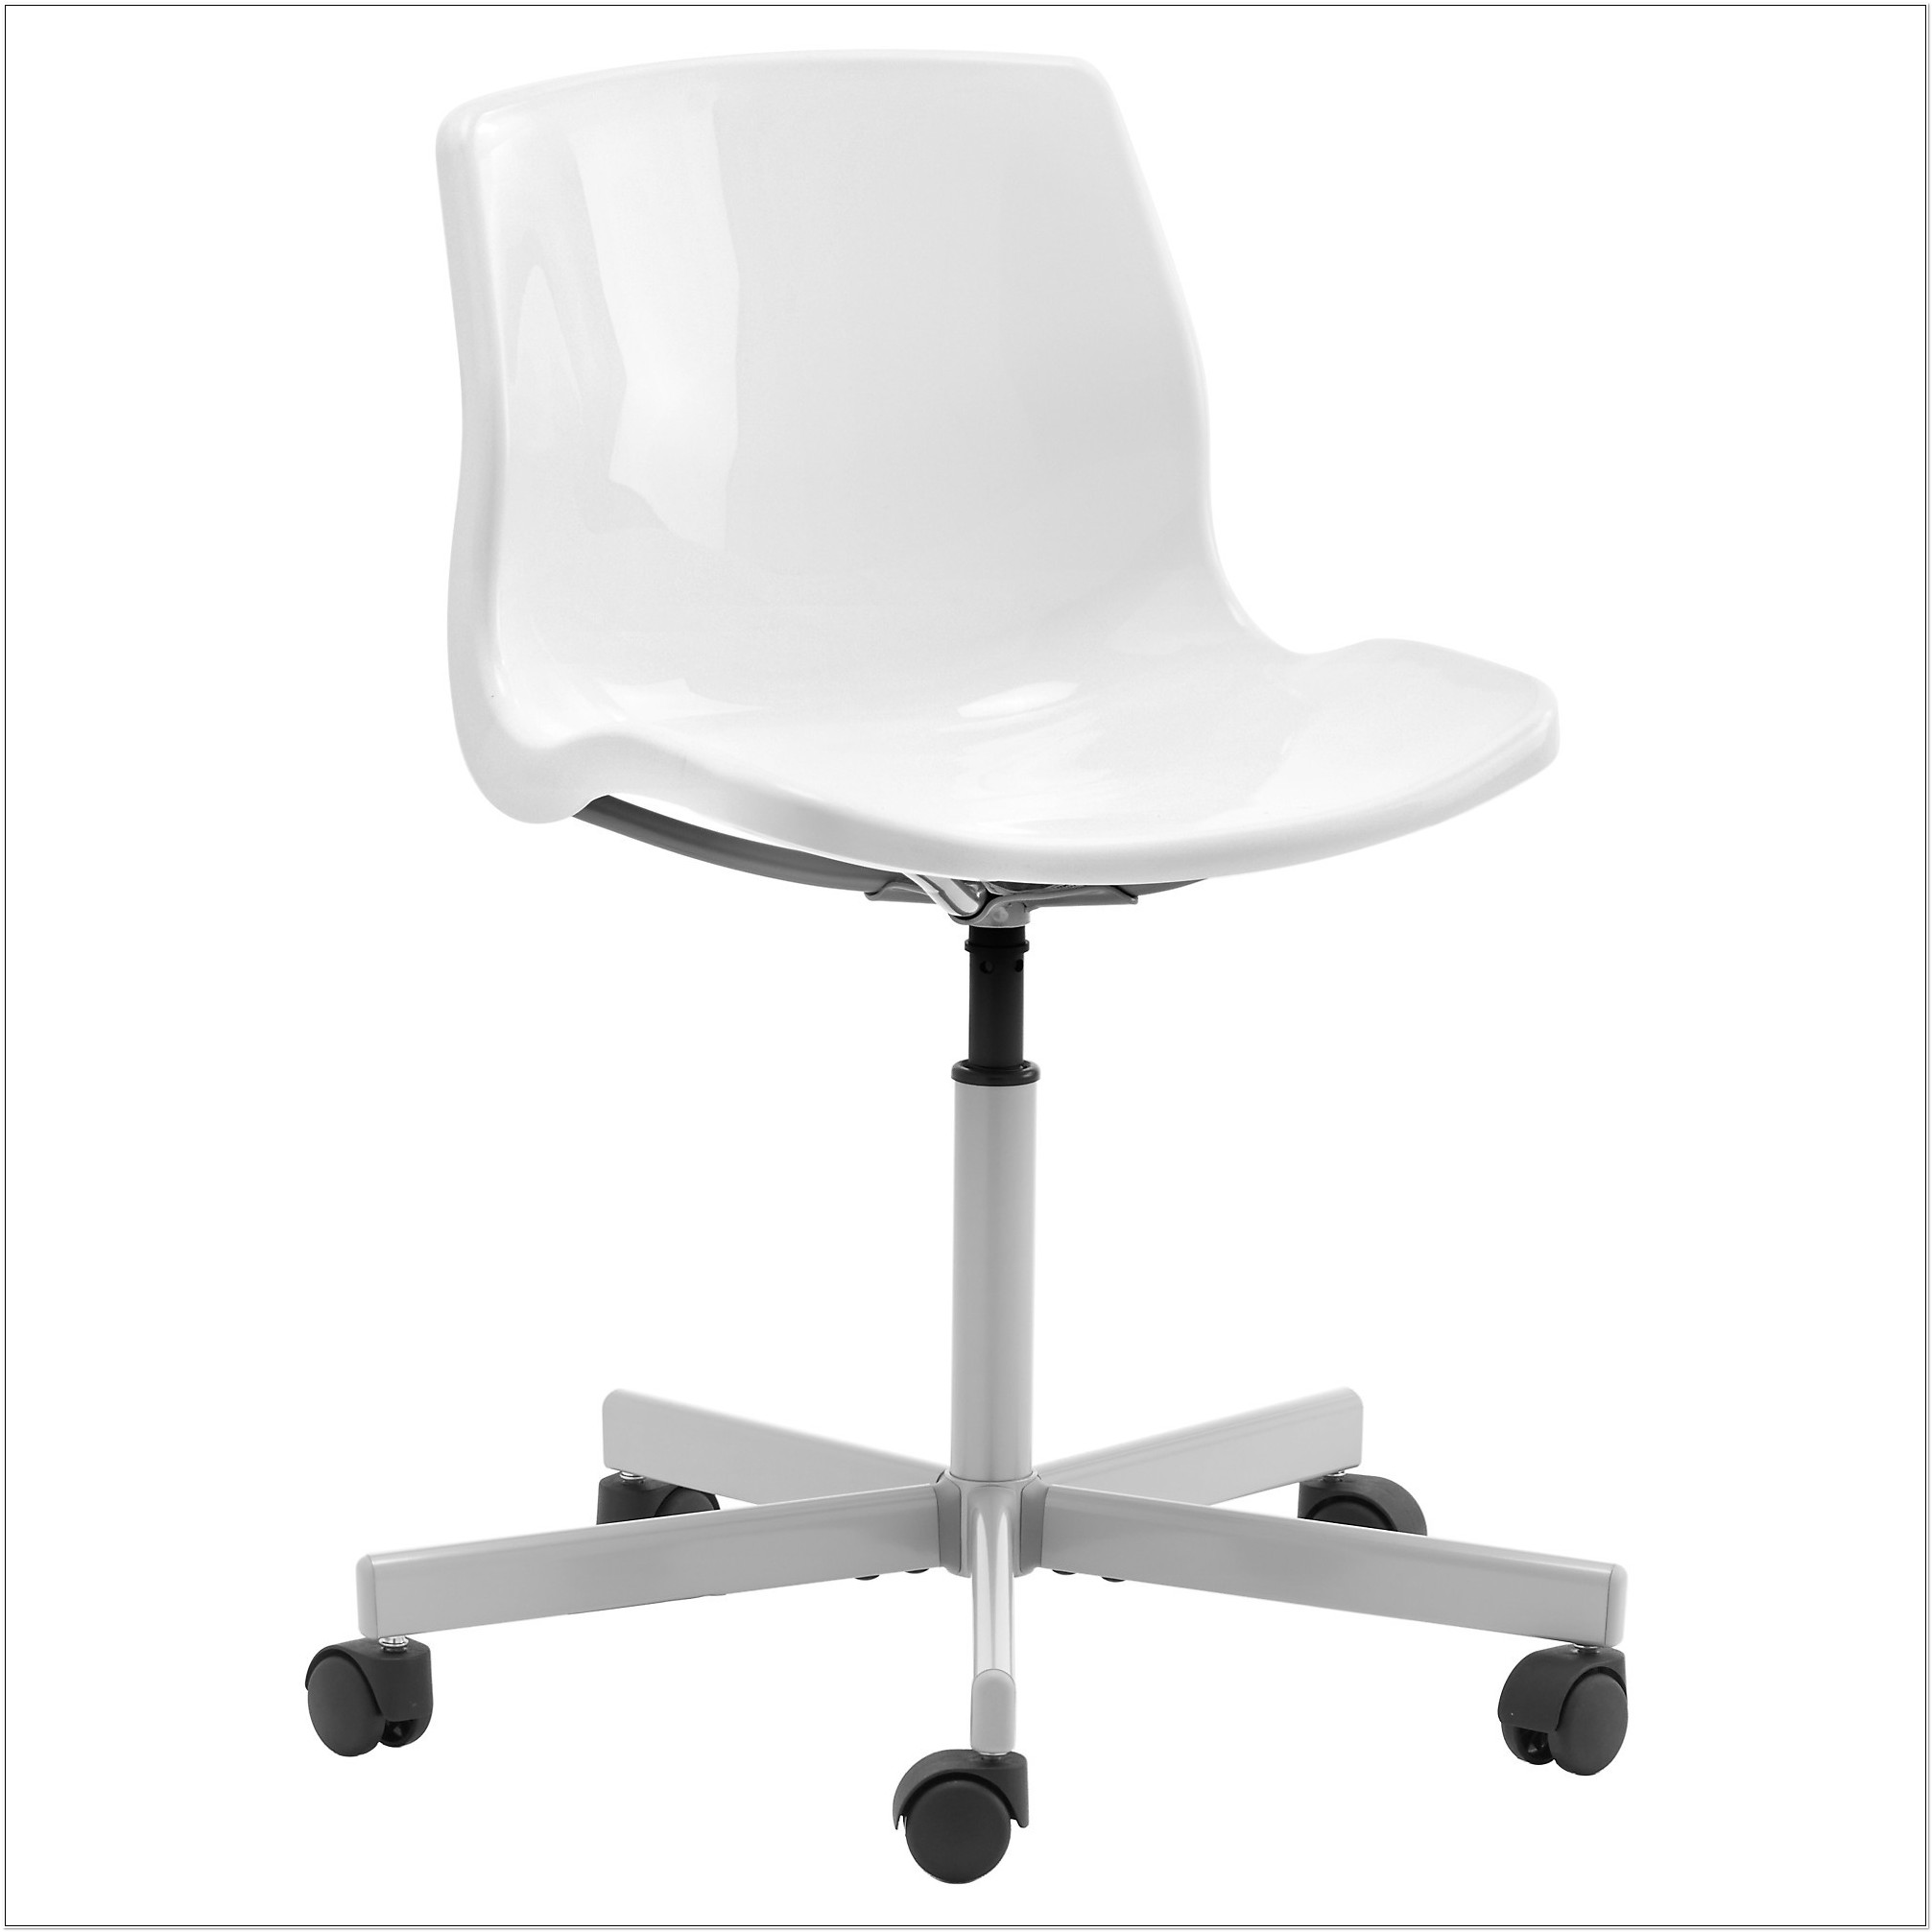 White Swivel Chair Ikea